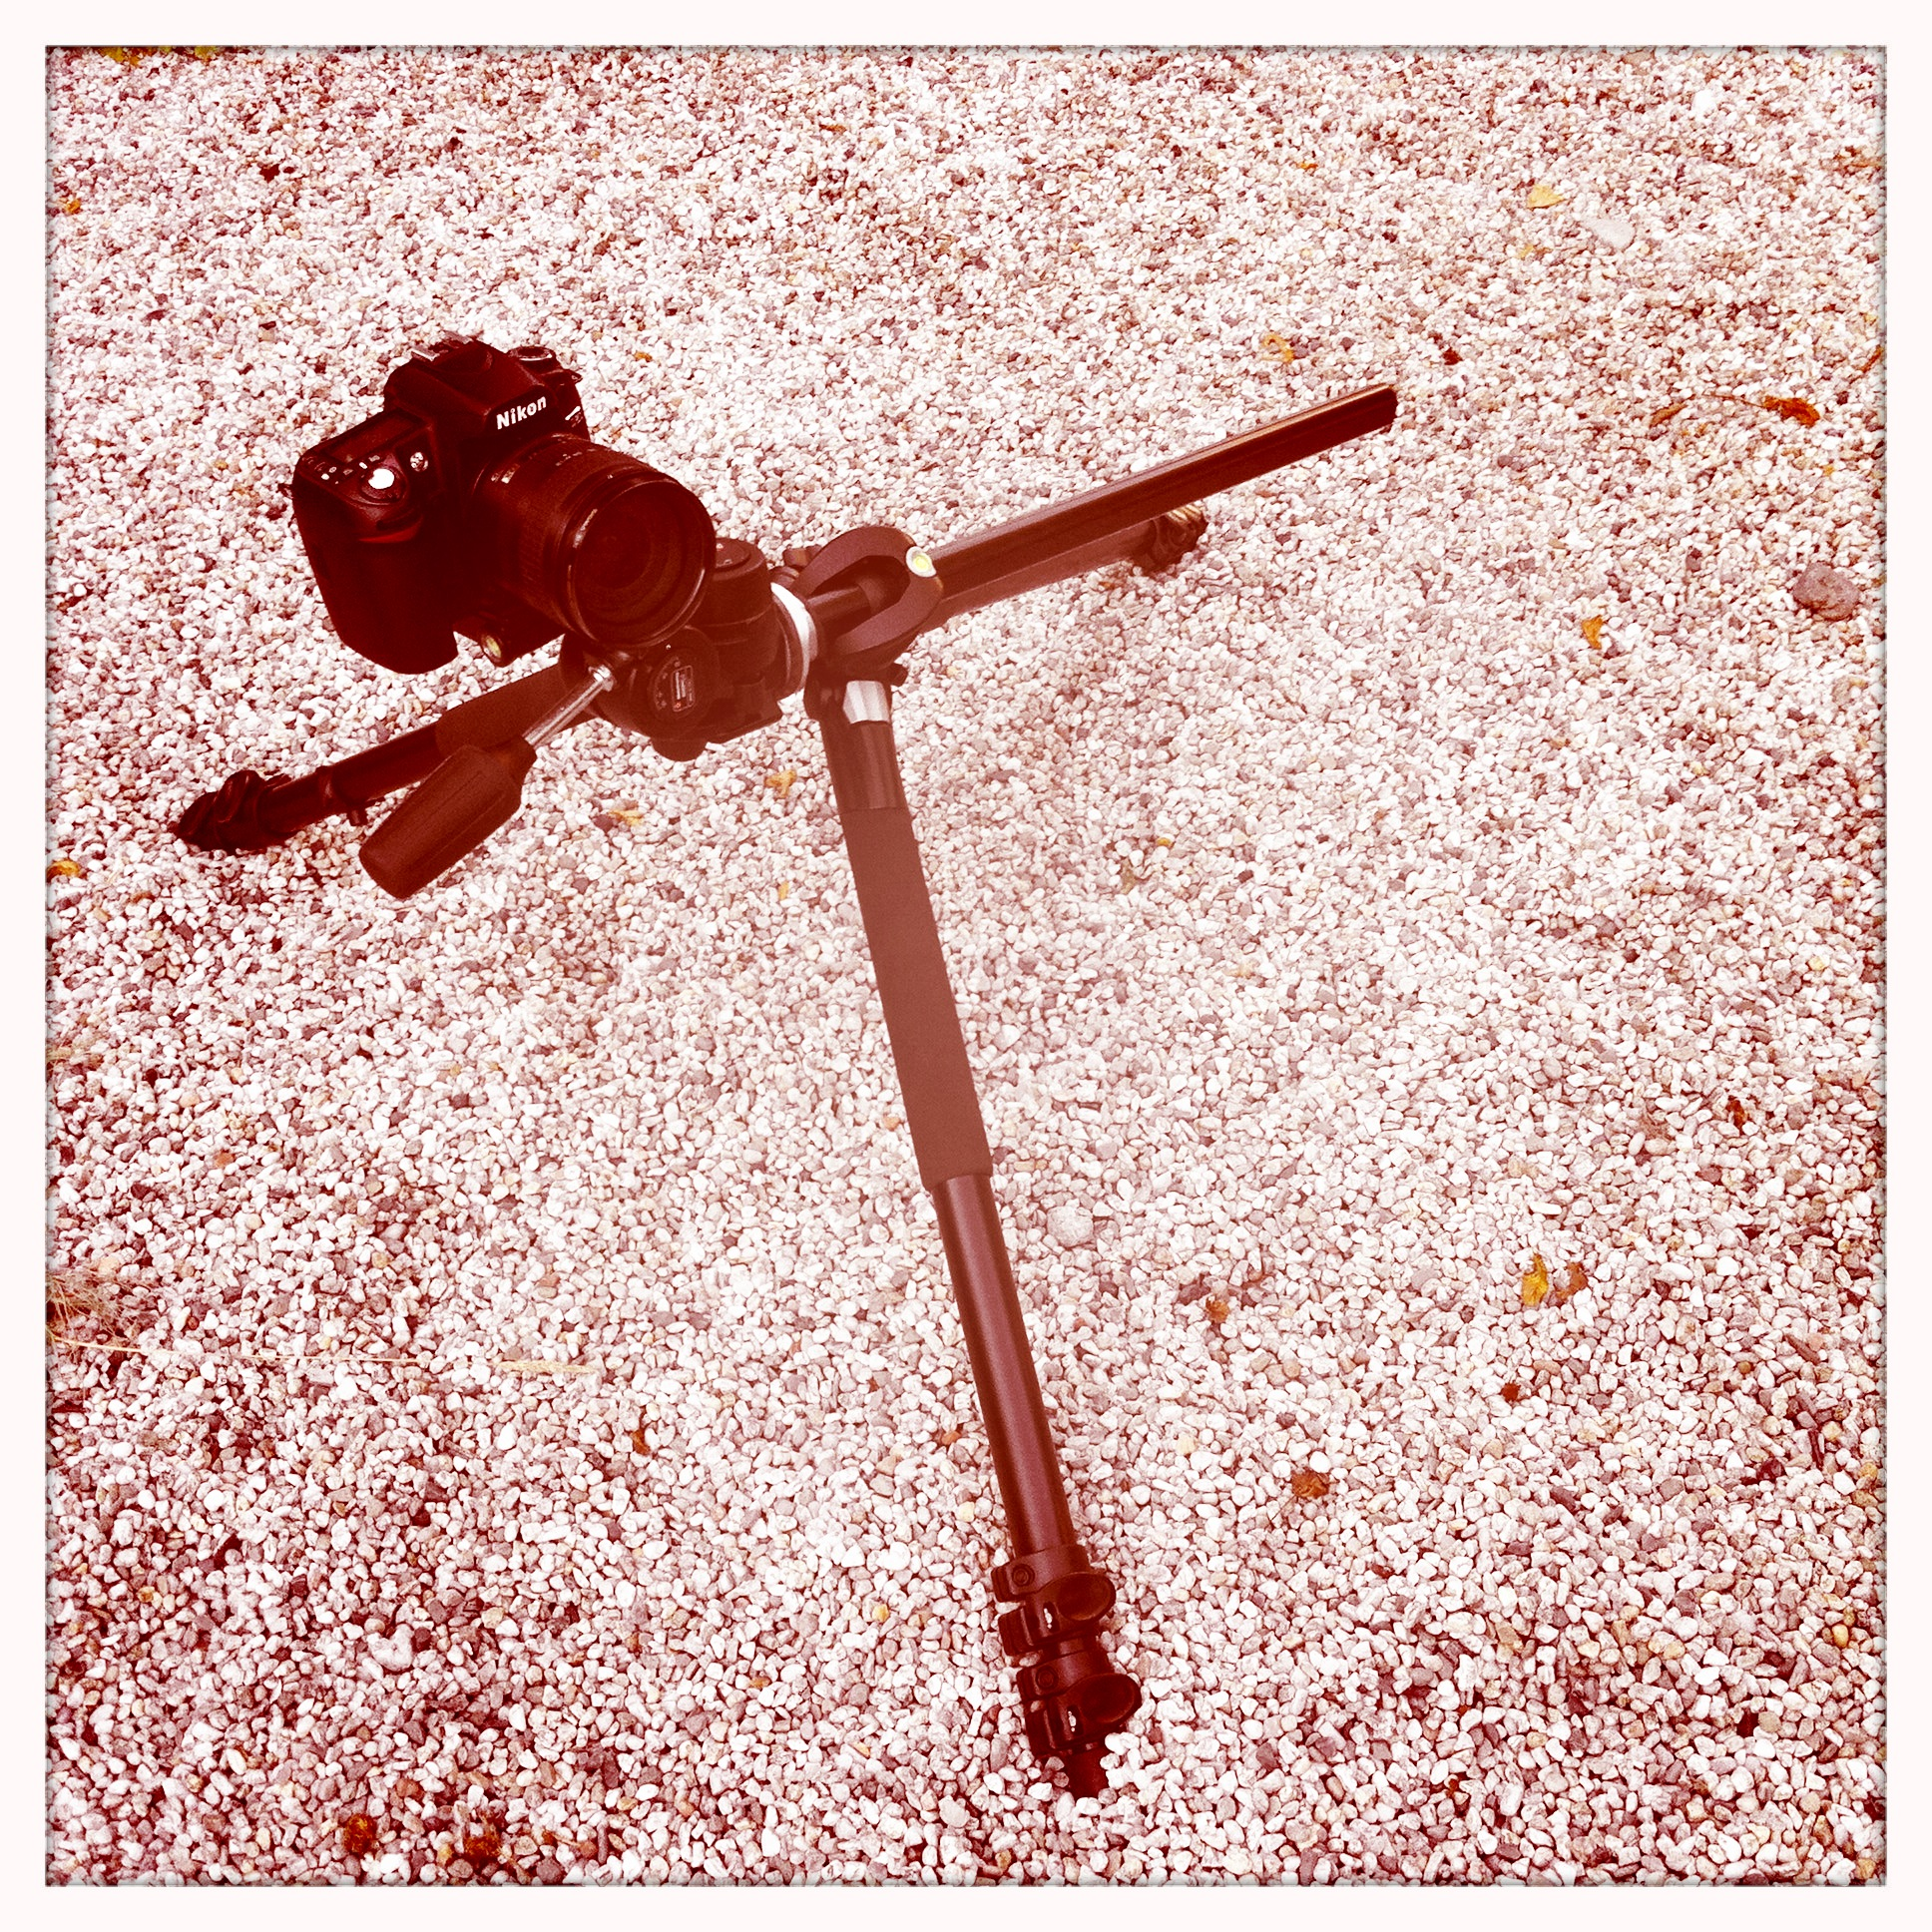 Manfrotto 055XPROB 804RC2